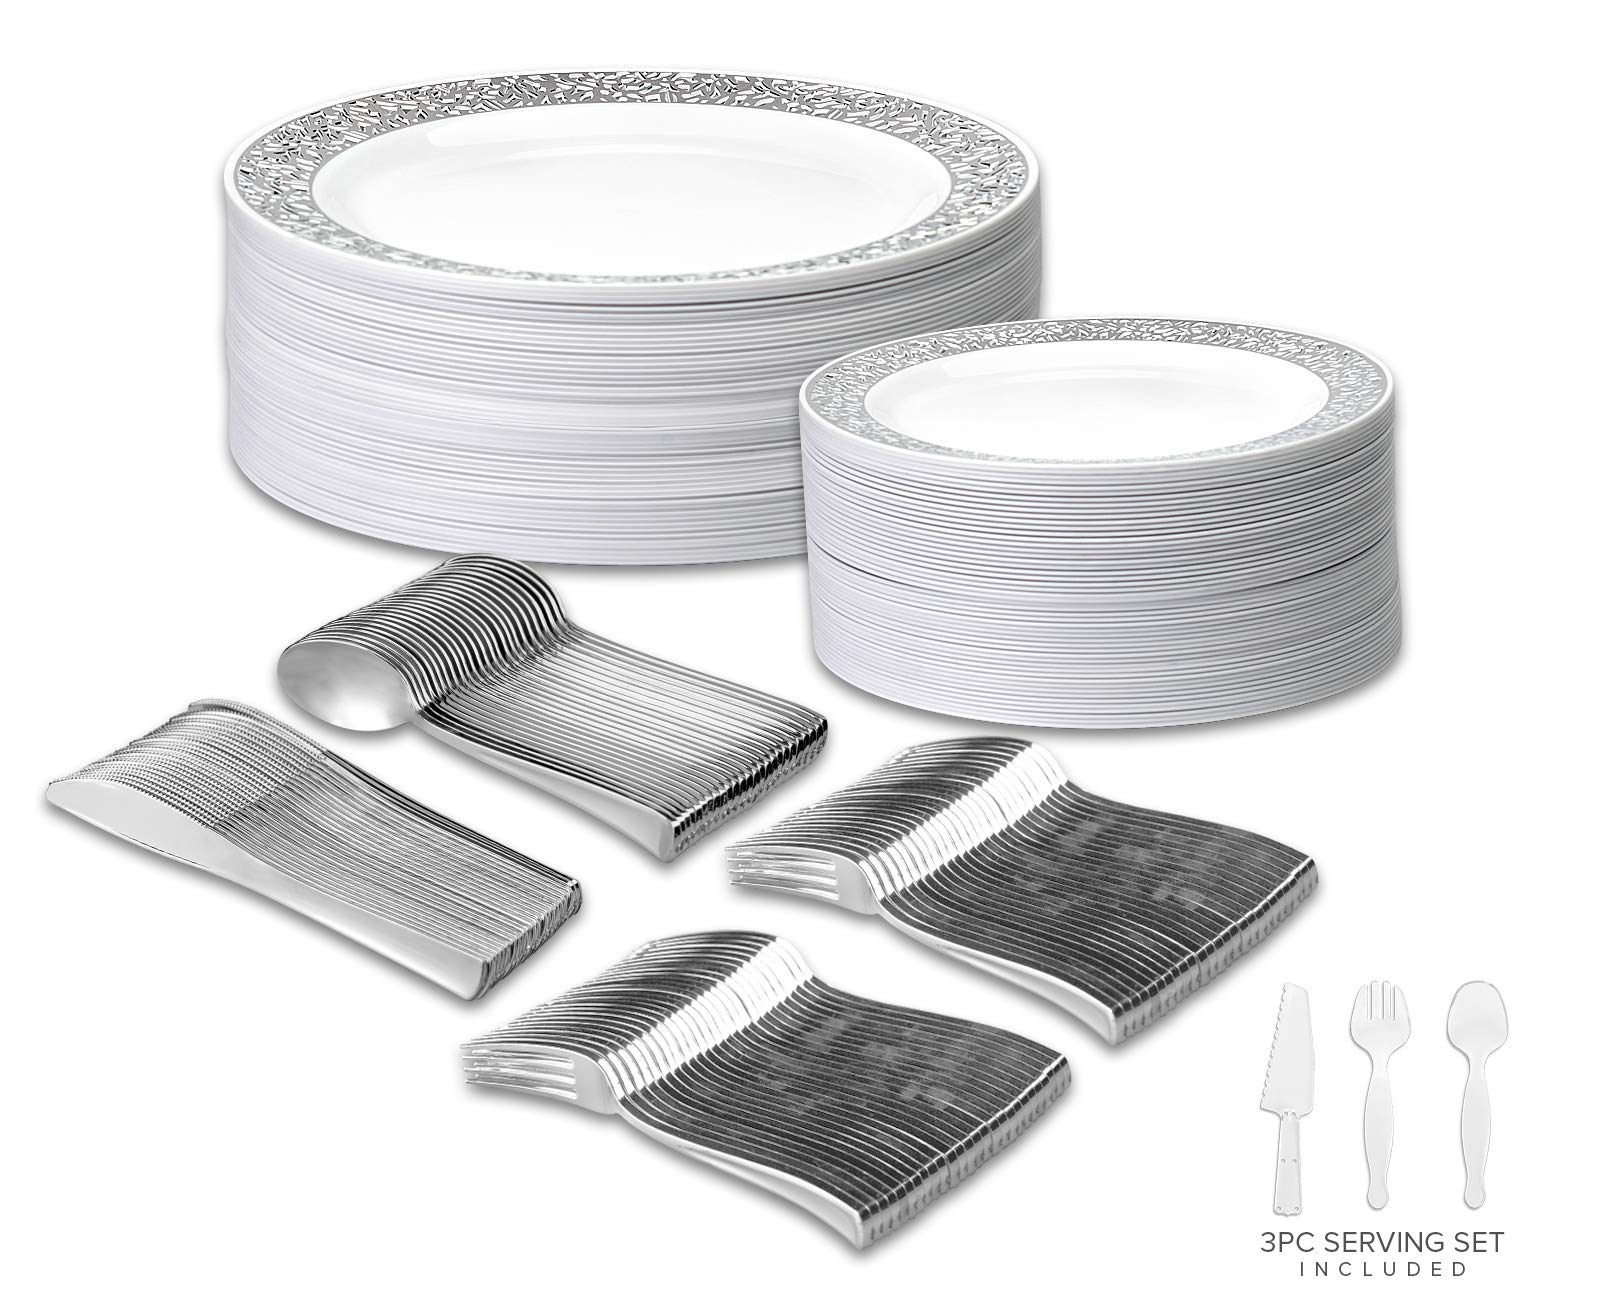 Your Gatherings - 606pc/100 Guest Silver Premium Disposable Wedding Dinnerware Set | 100 Dinner Plates, 100 Dessert Plates, 200 Forks, 100 Spoons, 100 Knives, (100 Guest Set, Silver) by Your Gatherings (Image #1)